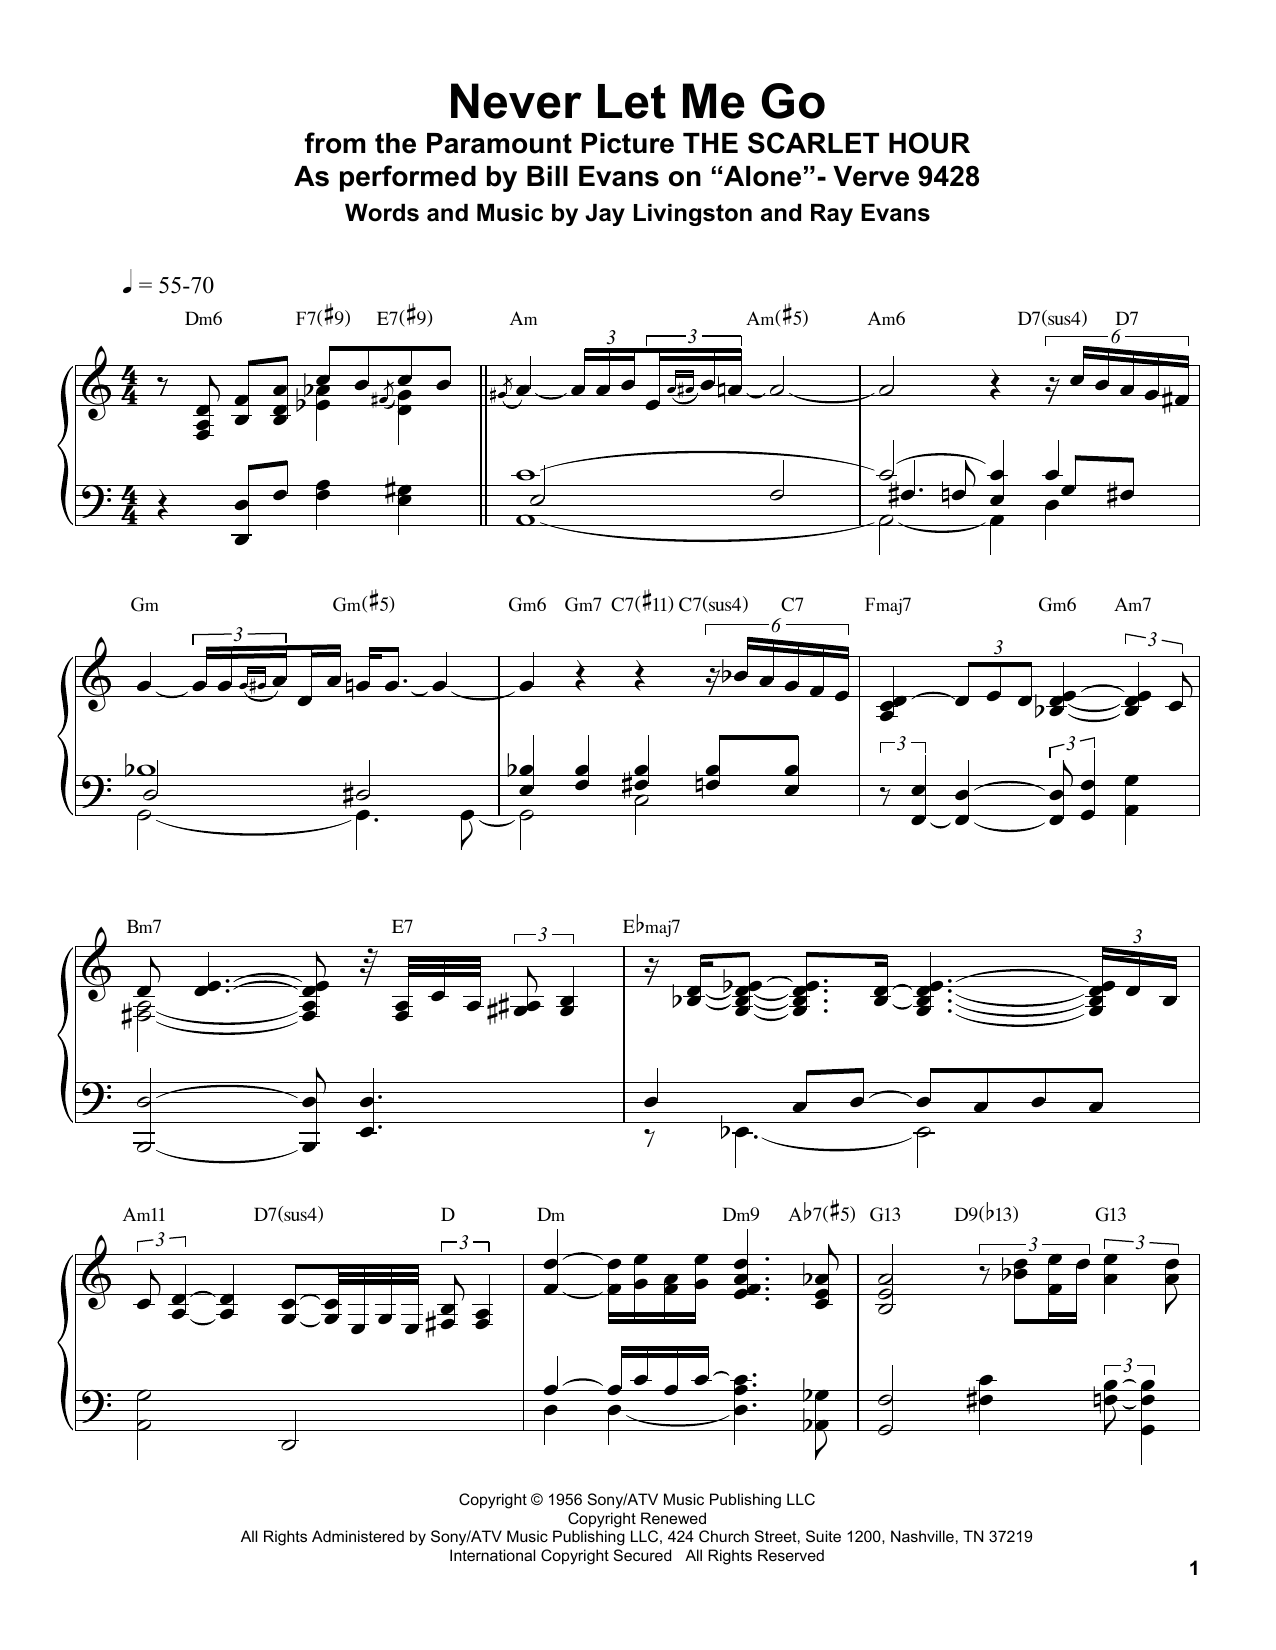 Never Let Me Go Sheet Music